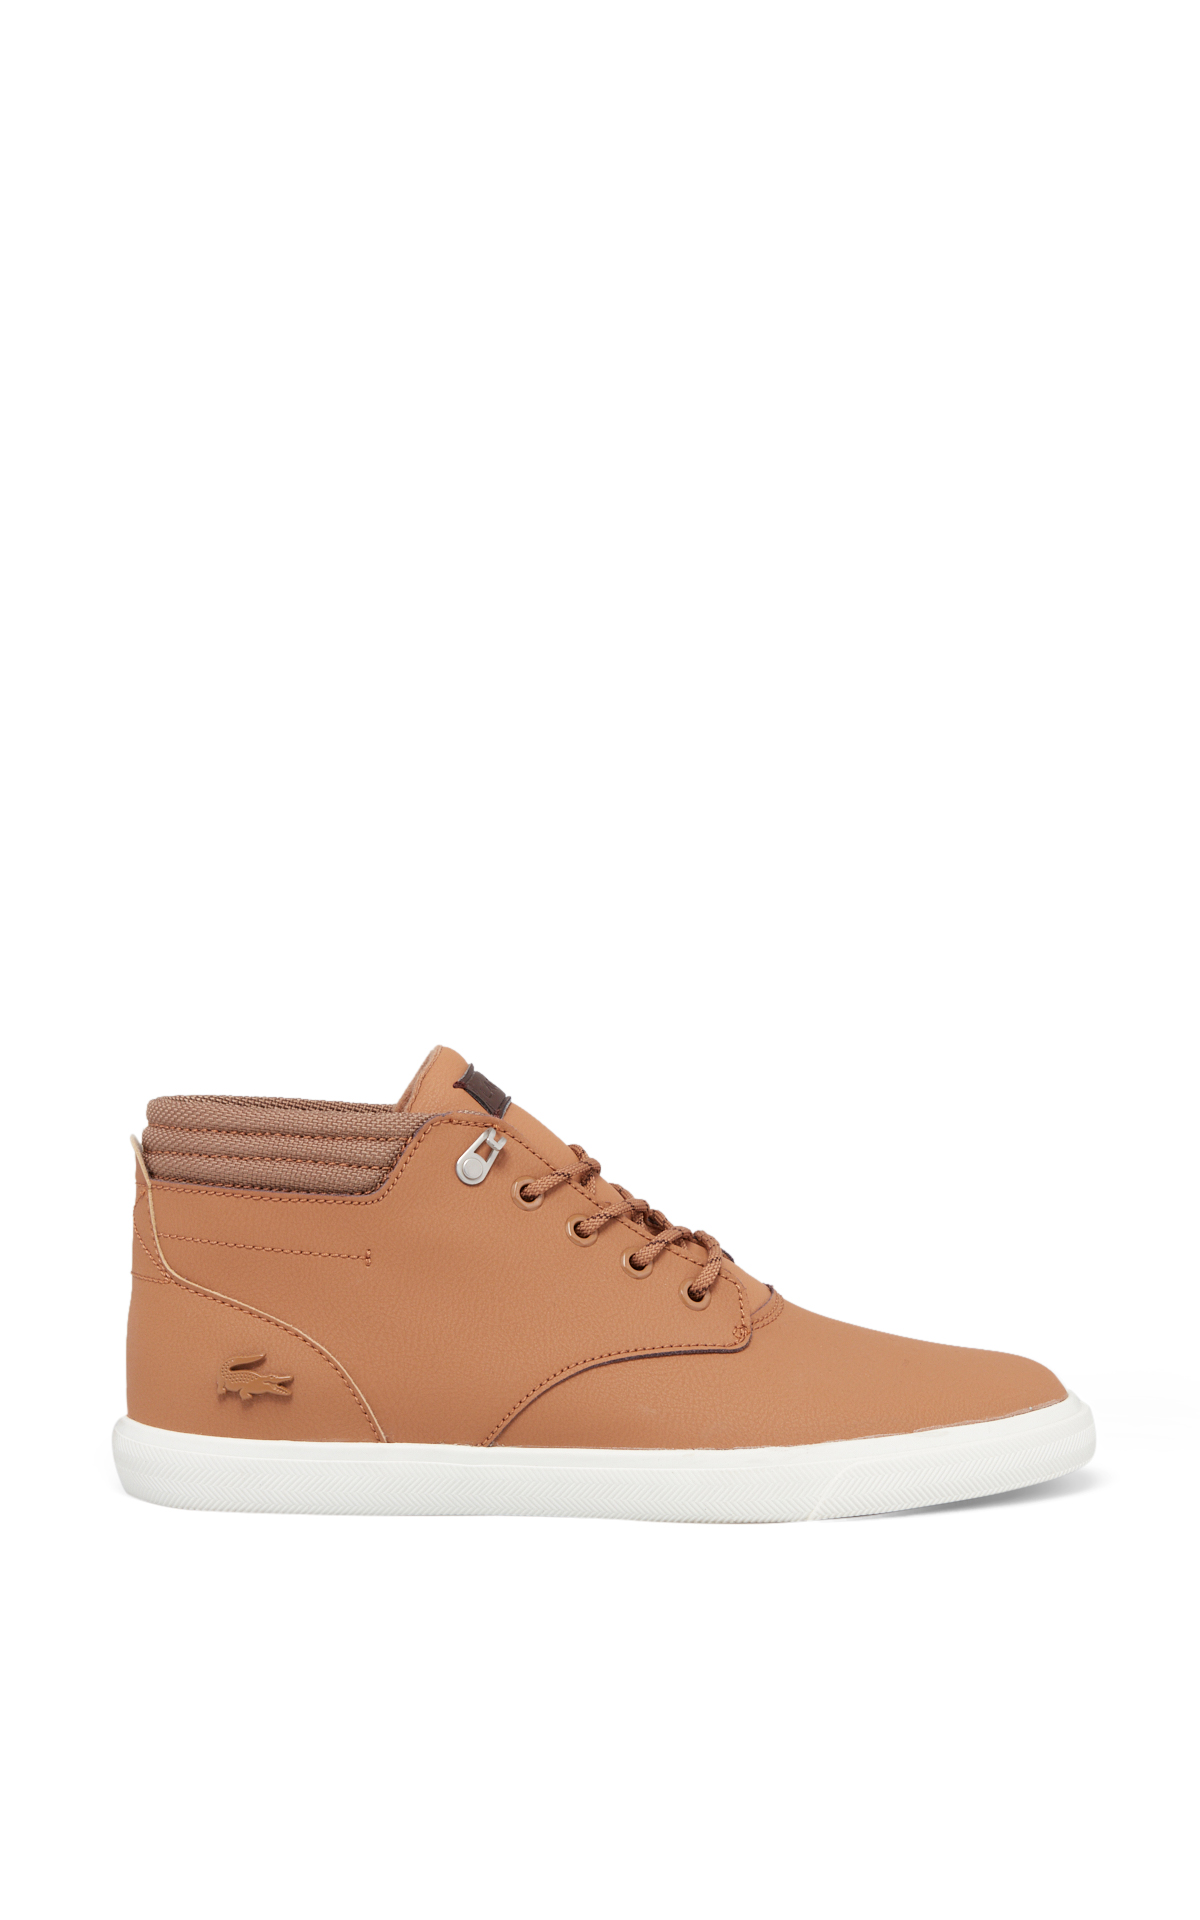 Lacoste Chaussures camel homme*